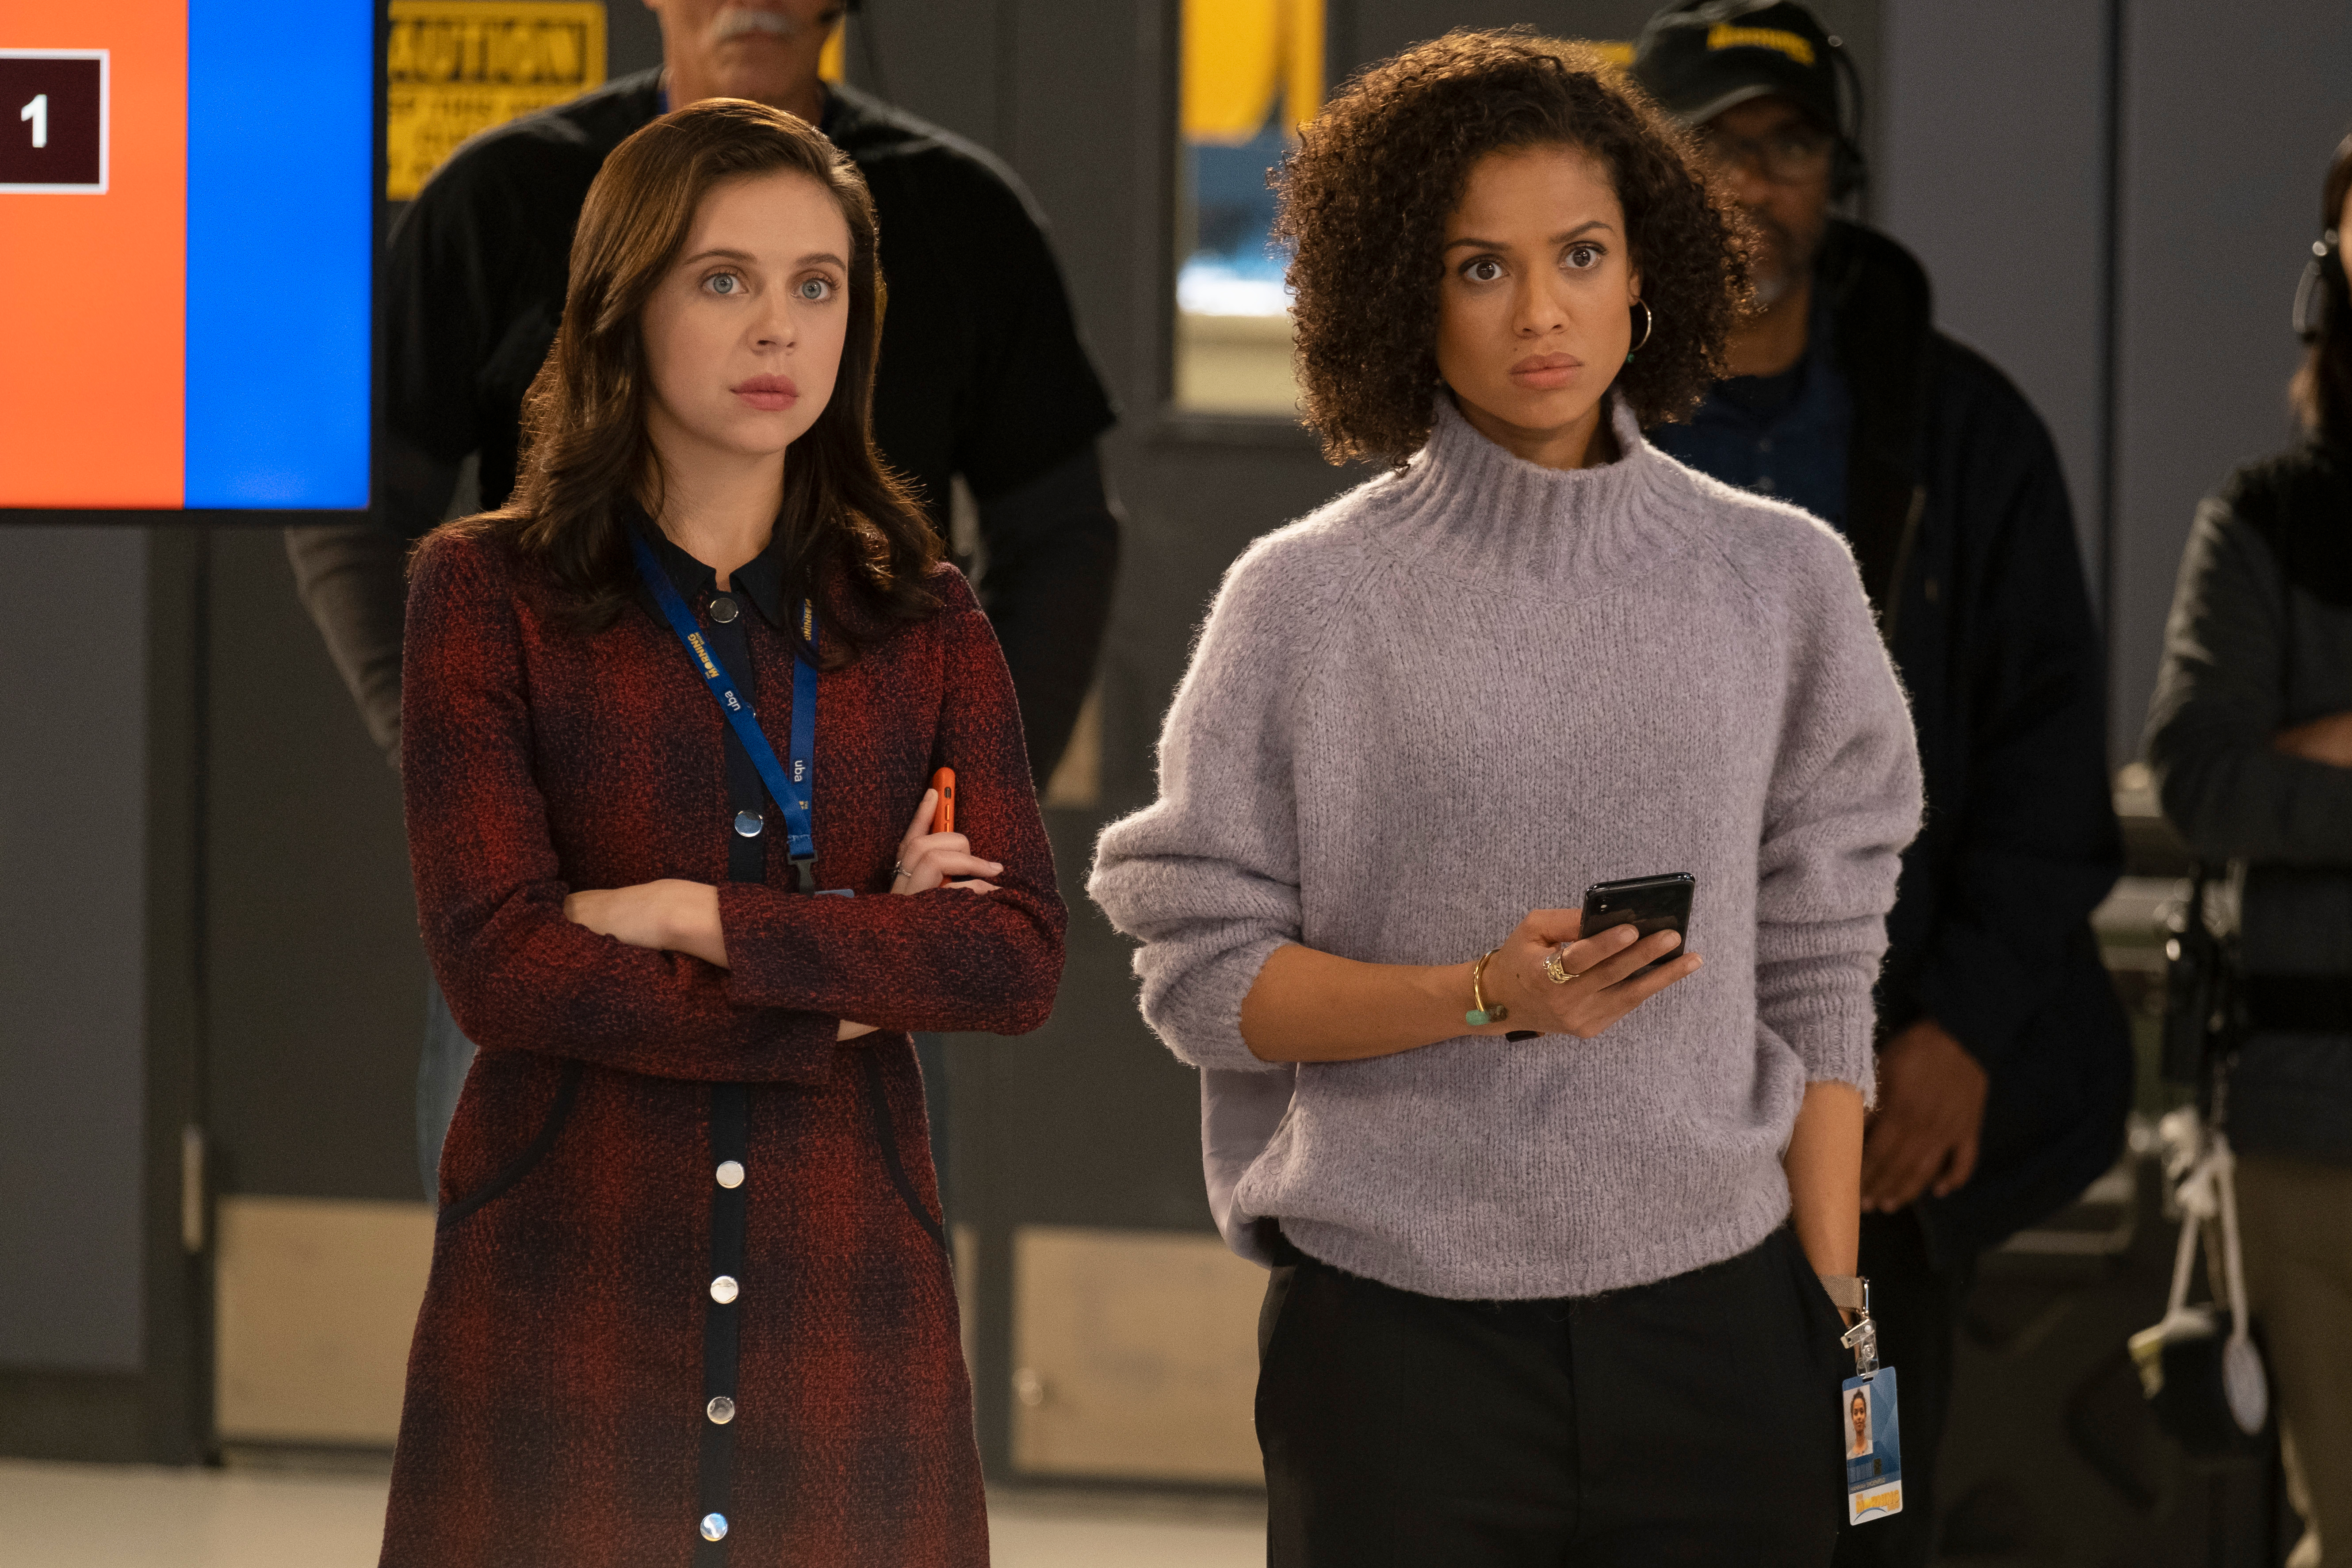 Gugu Mbatha-Raw and Bel Powley in The Morning Show (2019)